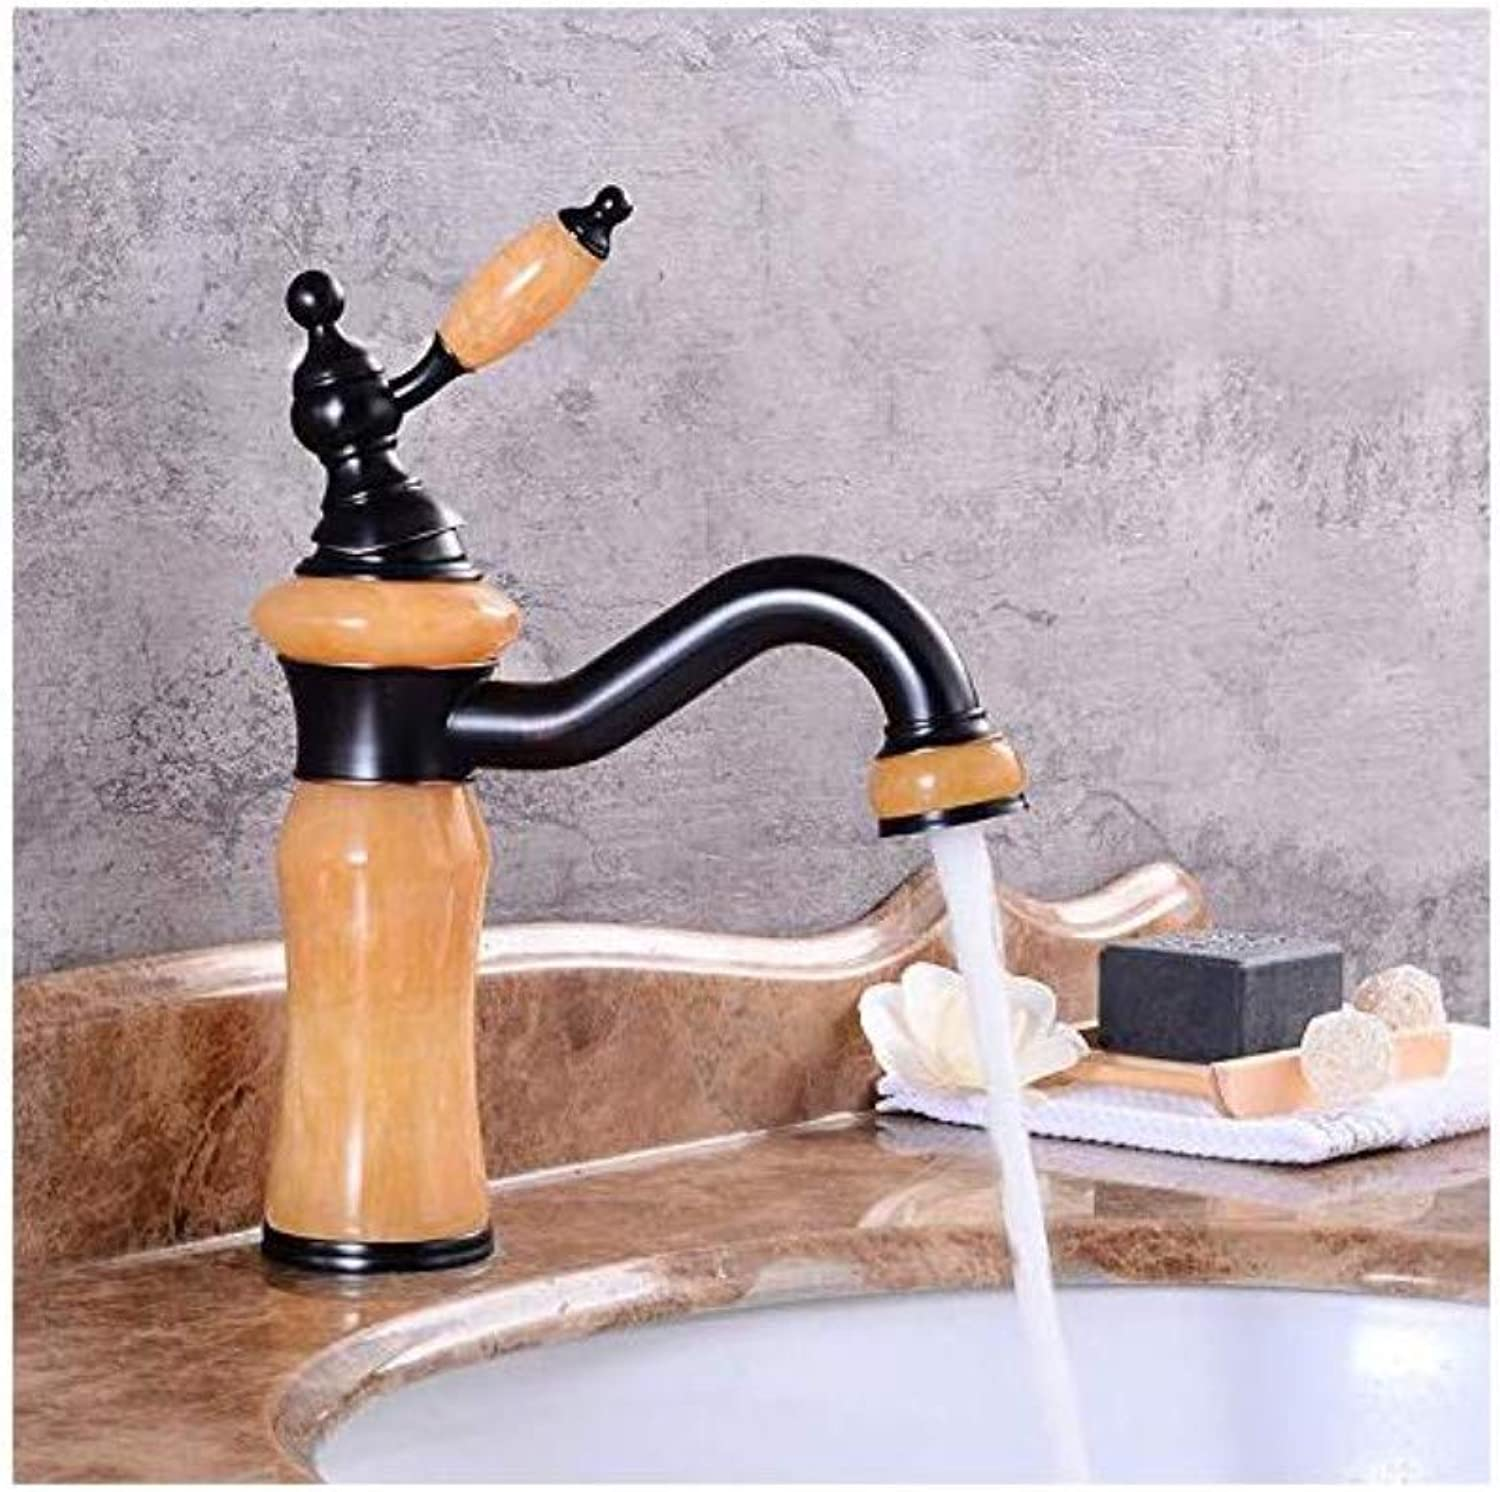 Modern Plated Mixer Faucet Faucet Copper gold Jade redatable Basin Faucet Hot and Cold Water Mixer Faucet